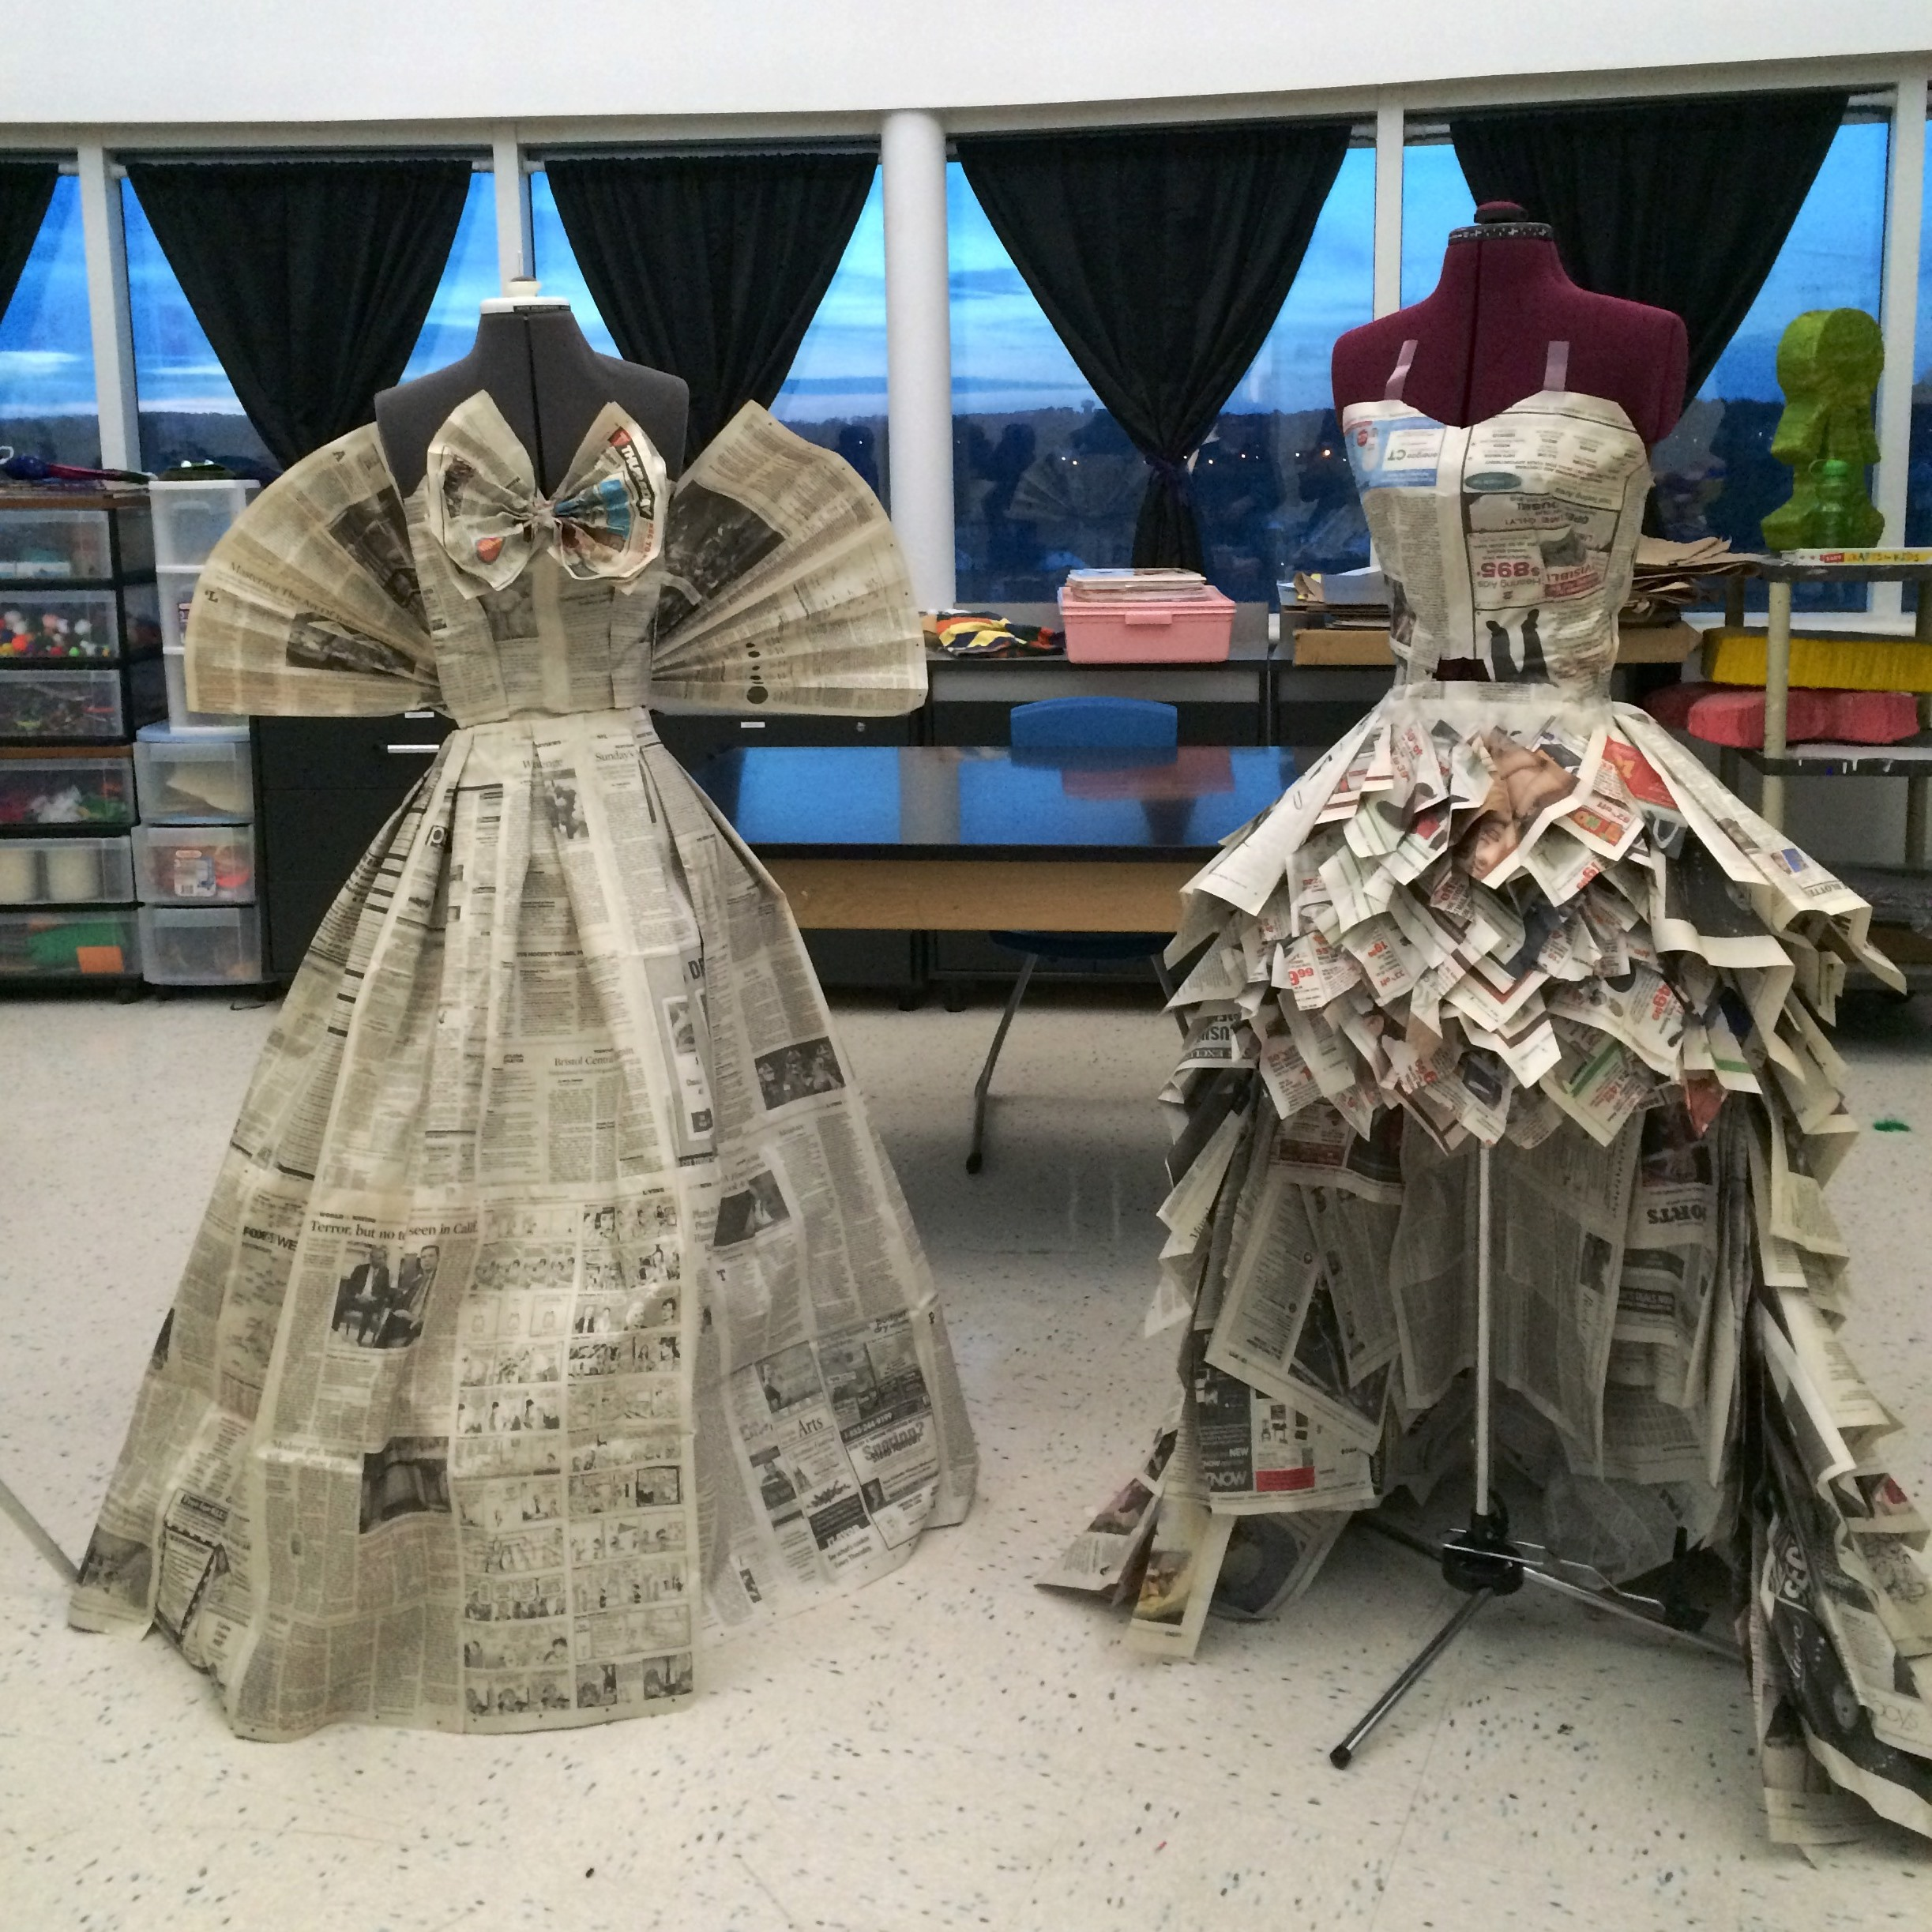 Rhs Students Learn Fashion Design Klingberg Family Centers